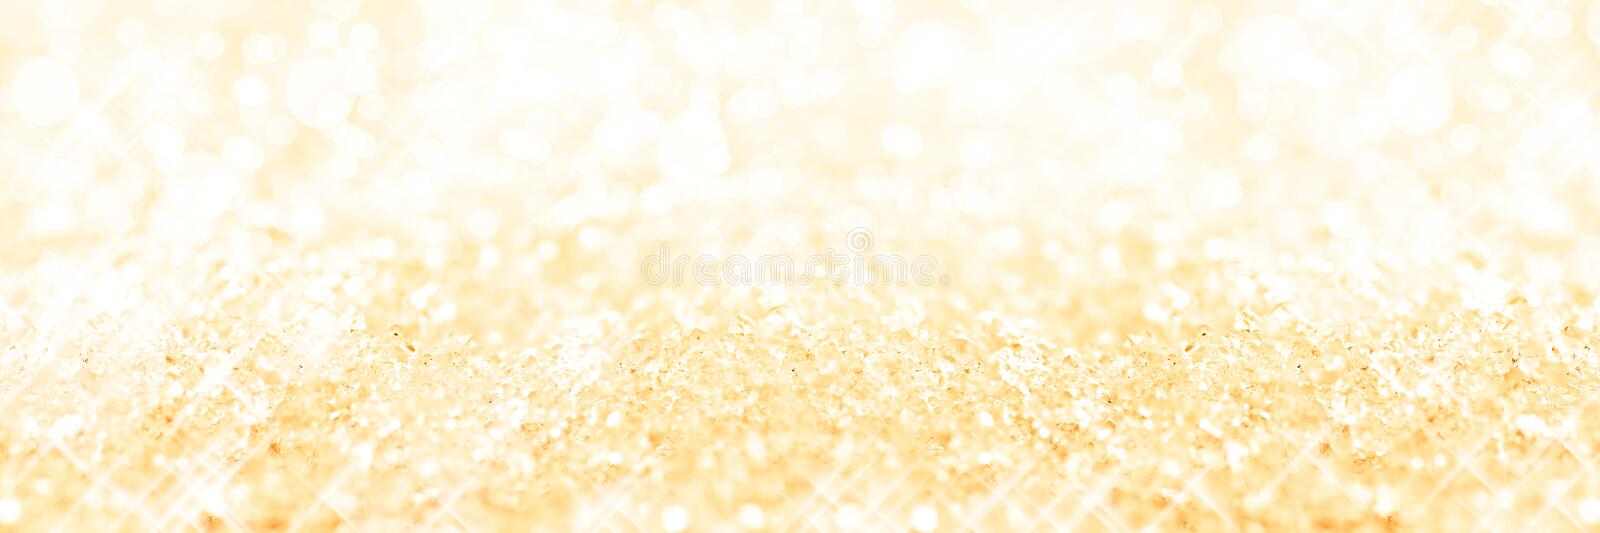 Panoramic golden background of snow, holiday background royalty free stock photography